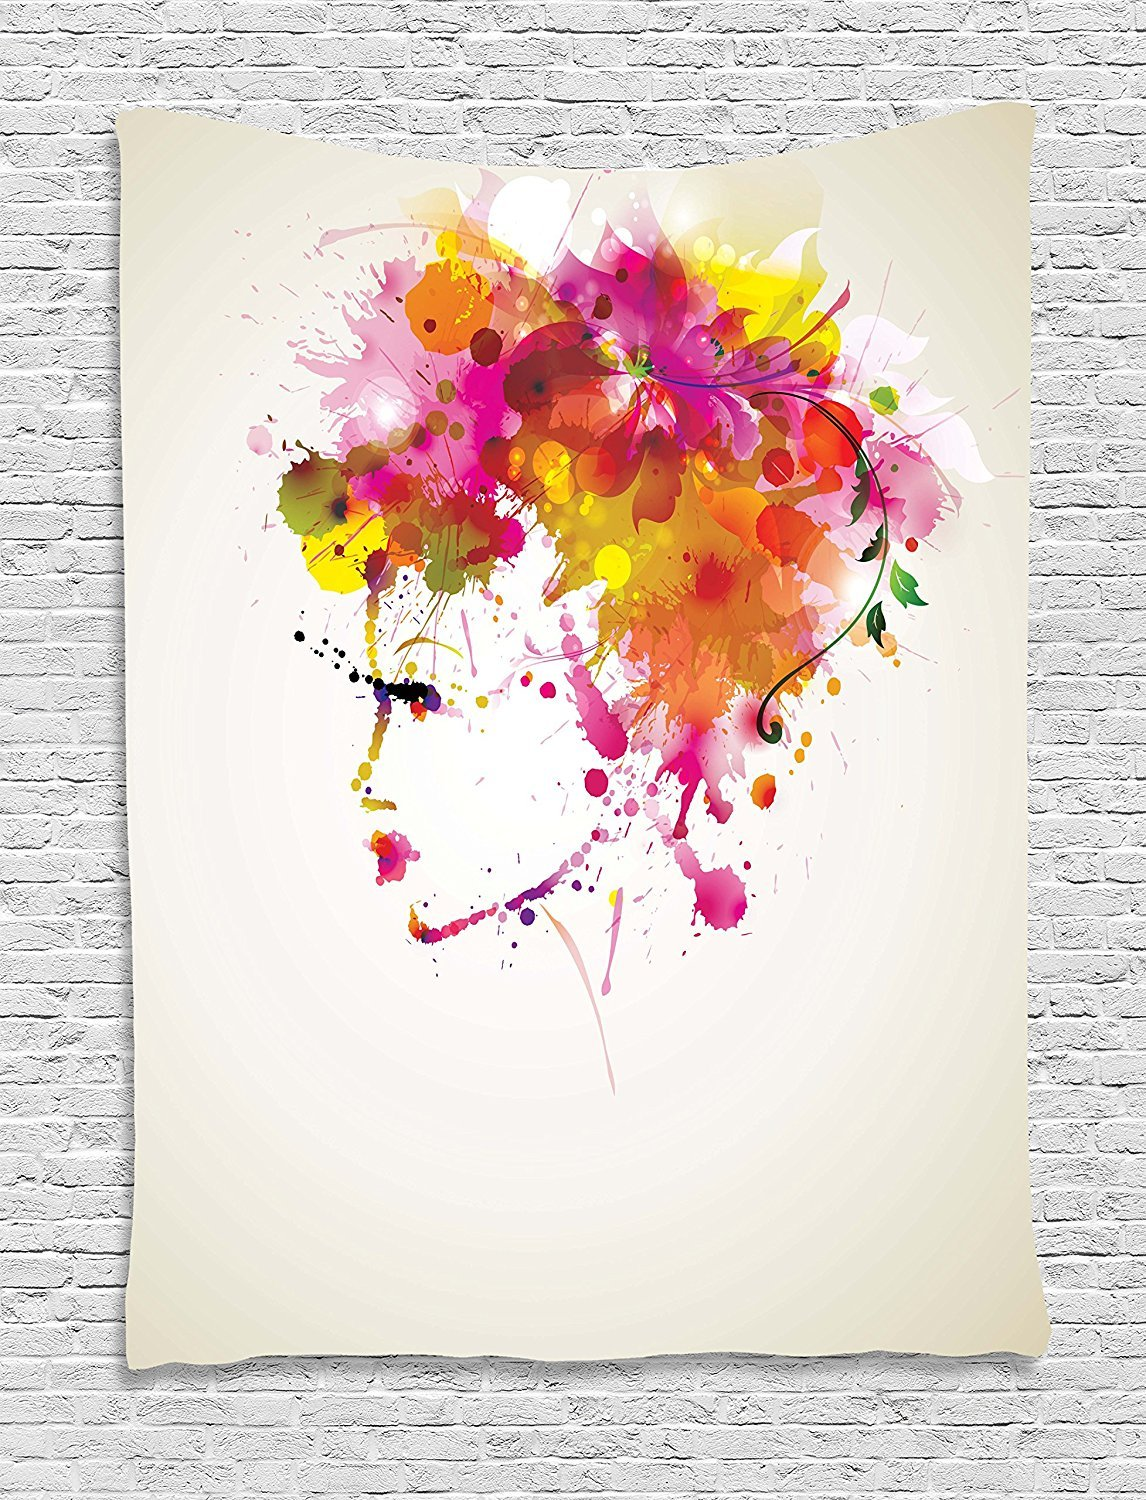 asddcdfdd Abstract Tapestry, Watercolor Portrait of a Woman with Artsy Floral Hairstyle Paint Splatters, Wall Hanging for Bedroom Living Room Dorm, 60 W X 80 L Inches, Orange Pink Green